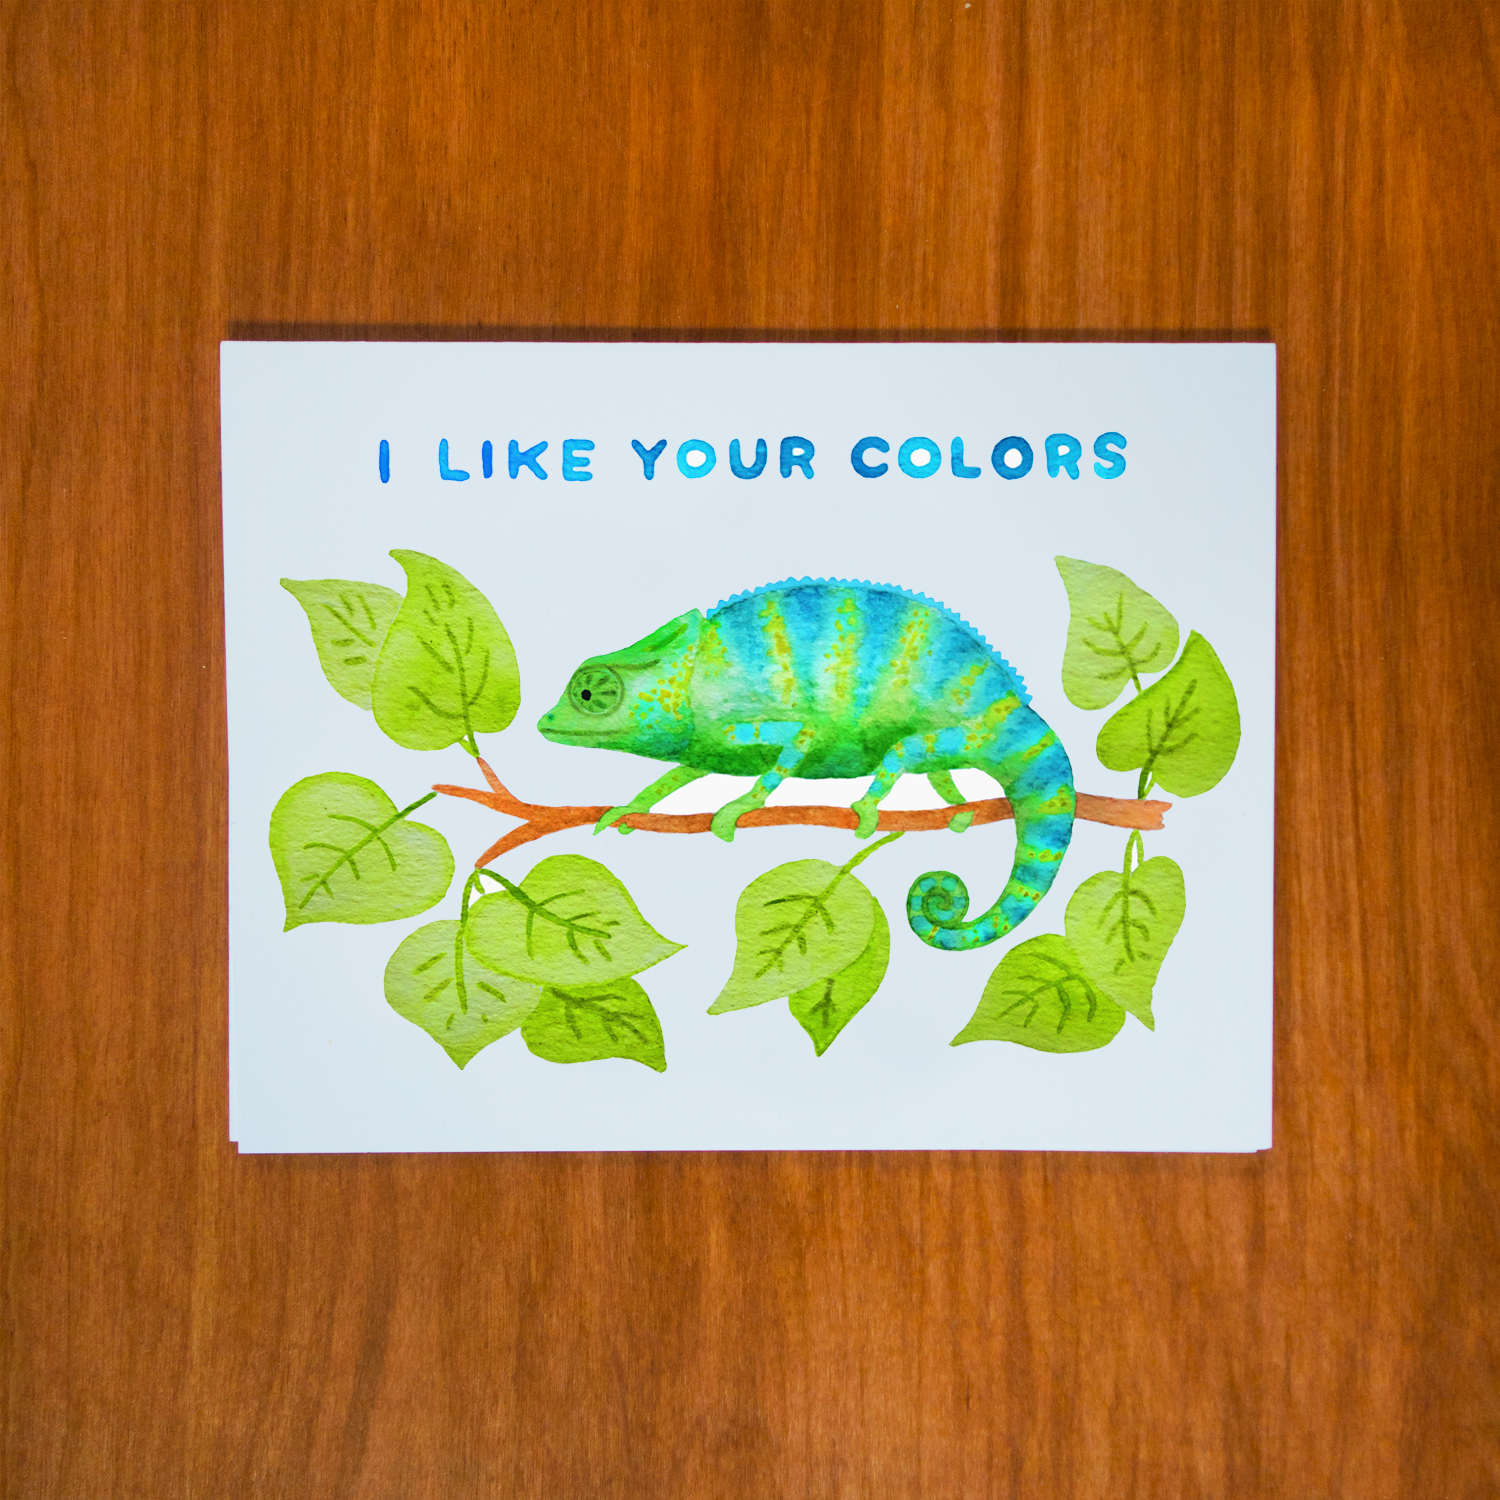 cham-greeting-card-on-wood-brighter.jpg